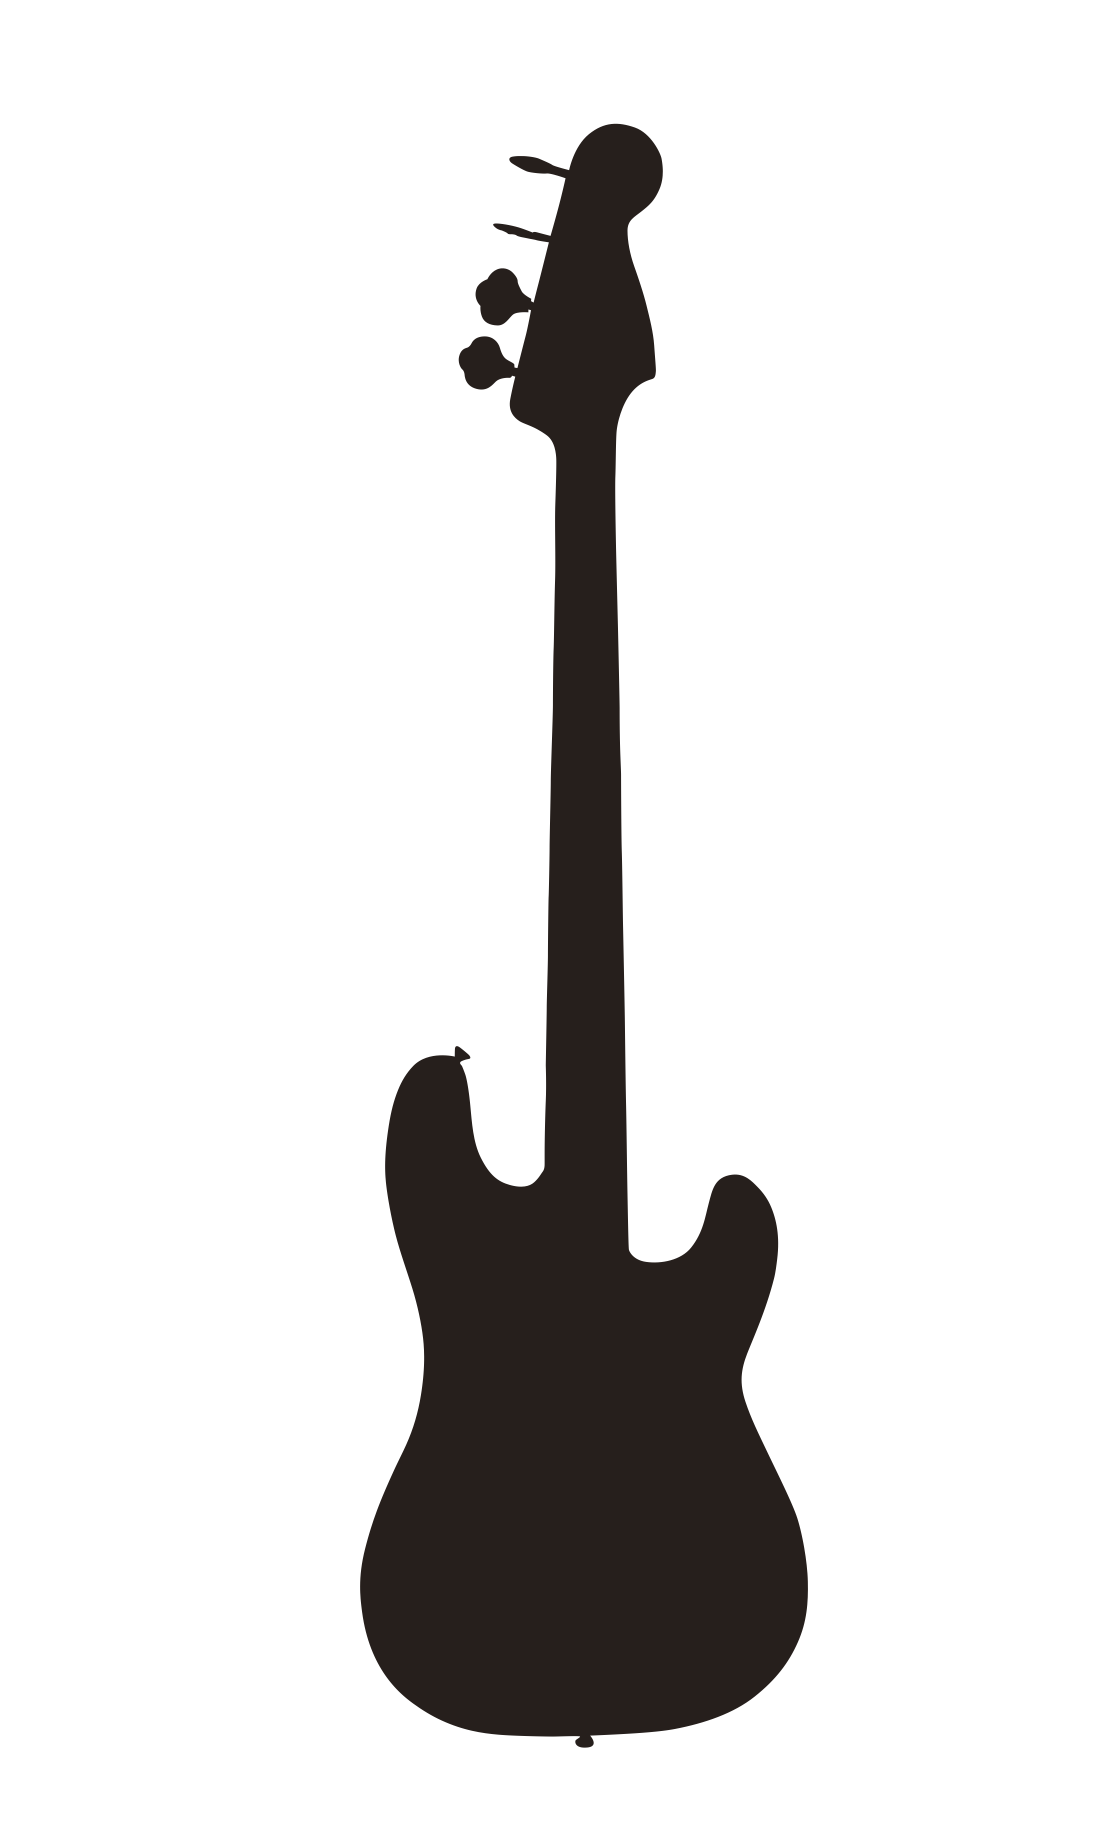 guitar black and white guitar clipart black and white images rh pinterest com Guitar Outline Clip Art electric guitar silhouette clip art